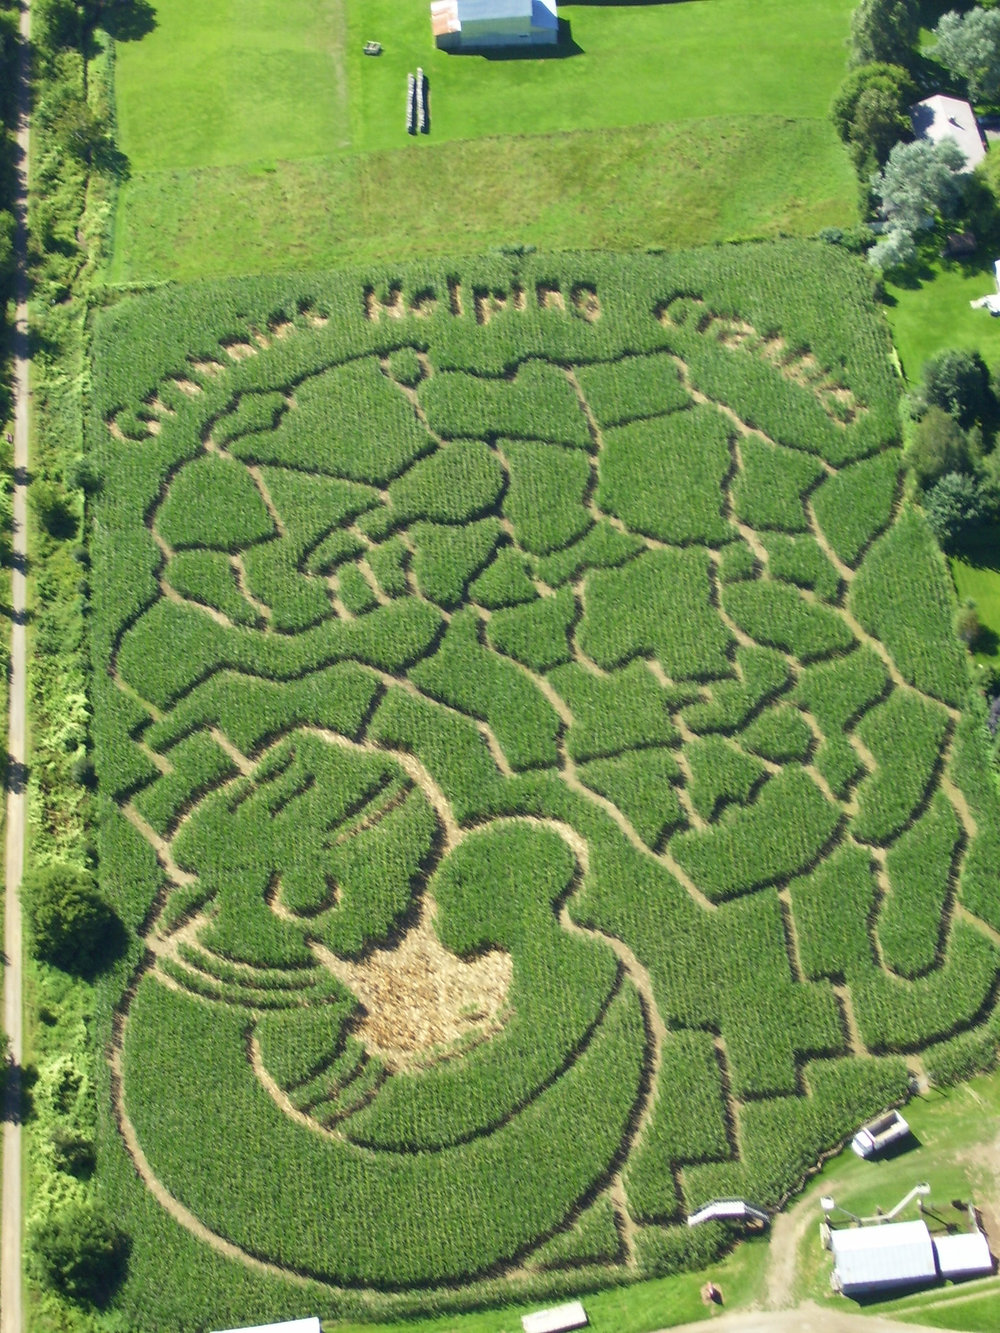 2006: Grannies Helping Grannies  Our 2006 maze featured the African continent with the logo created by the Go Go Grannies in Creston, B.C. to support the Grandmothers to Grandmothers campaign. This Stephen Lewis Foundation initiative encourages Canadian grandmothers to unite and support their African peers who are now left with the responsibility of raising their grandchildren as a result of the AIDS pandemic in Africa. Hunter Brothers Farm donated a portion of their maze proceeds to this cause and encouraged maze adventurers to do the same.